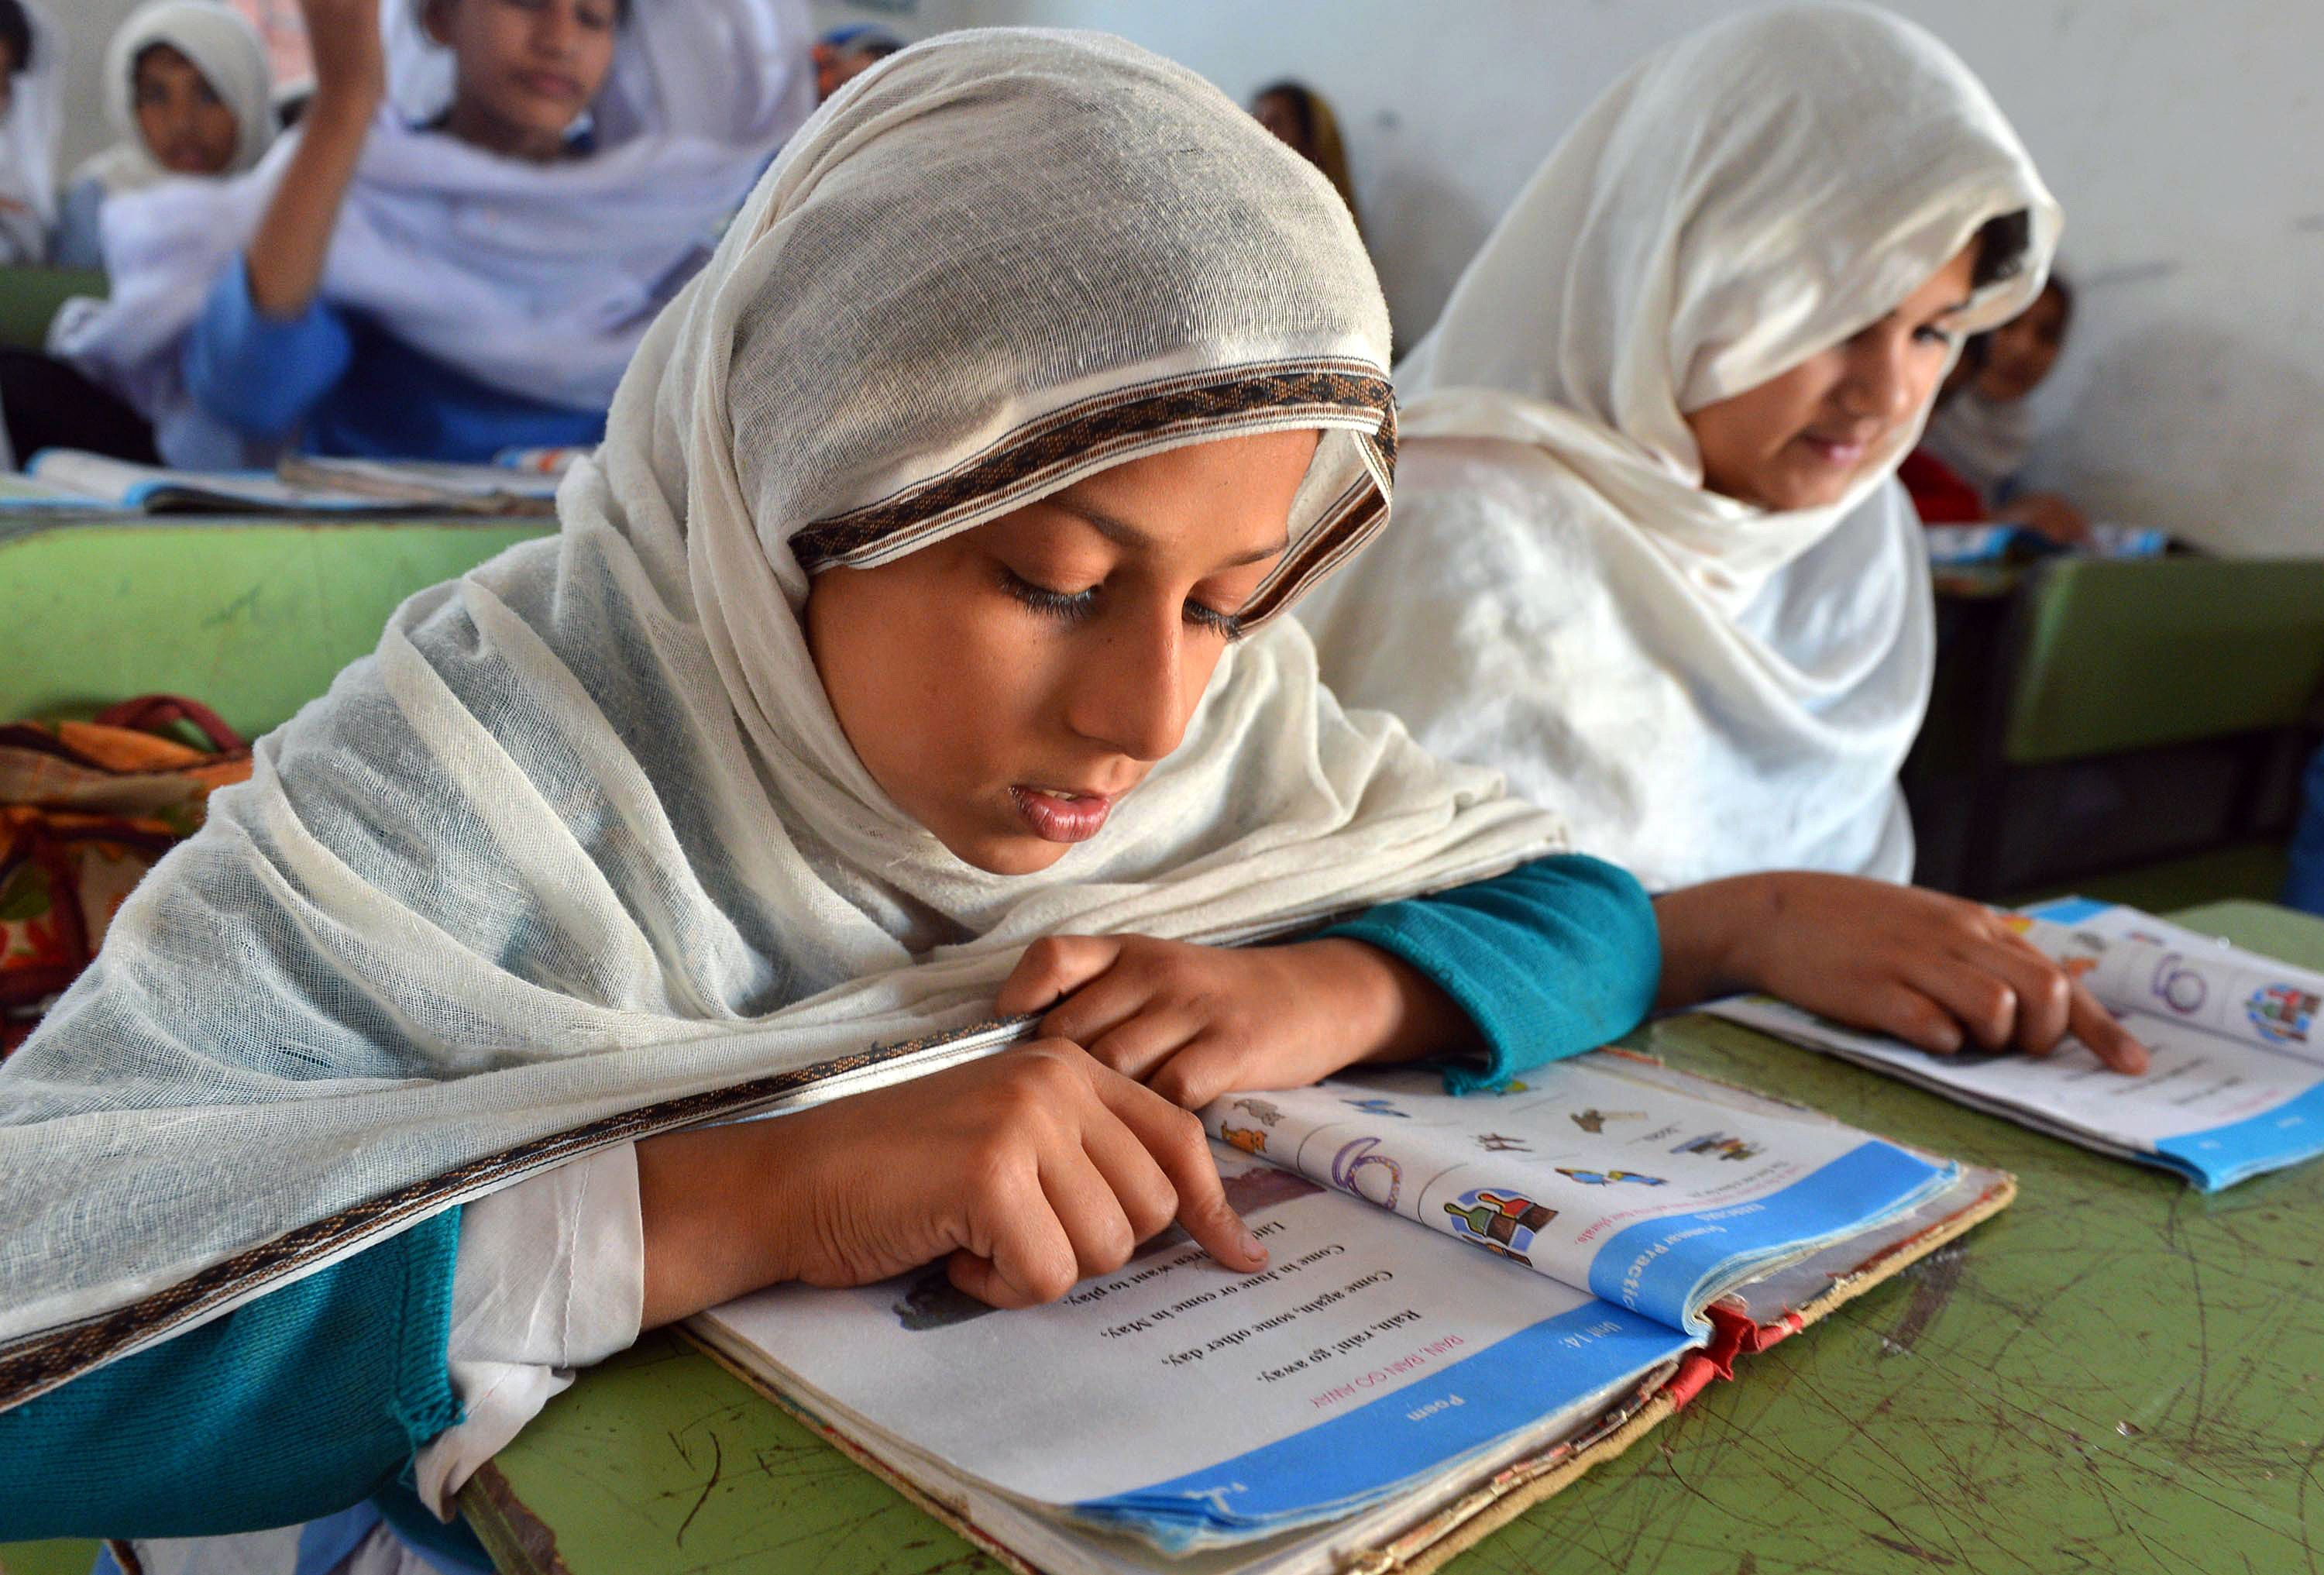 minister assures improvements in education facilities opportunities for women photo pakistantoday